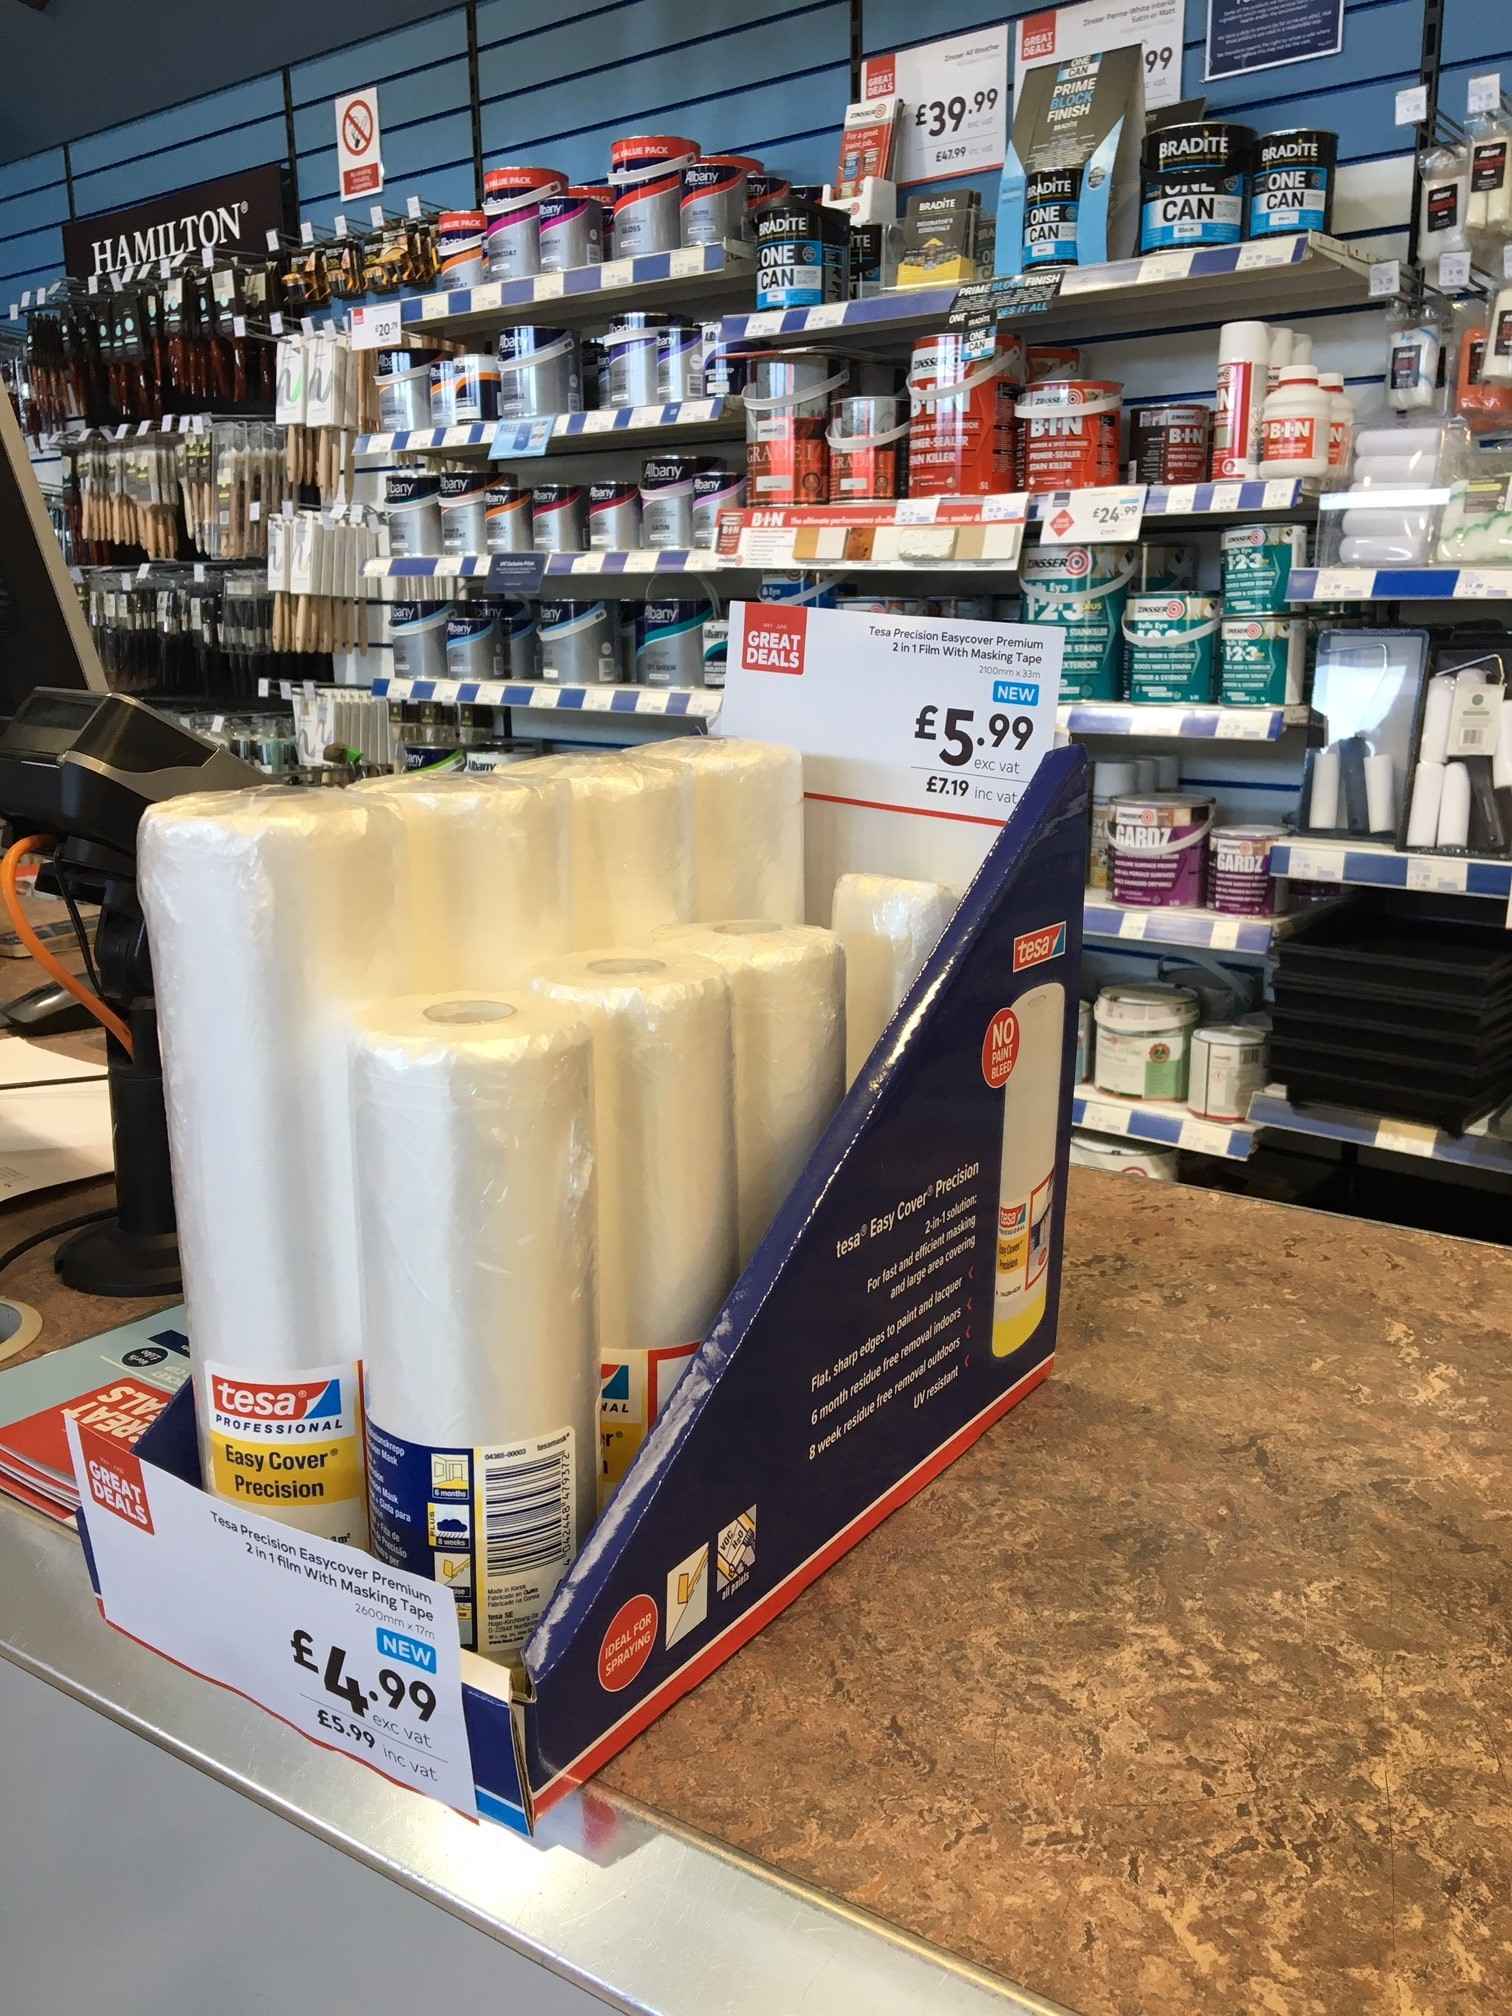 tesa launch new spray paint protection solution in Brewers stores, spray